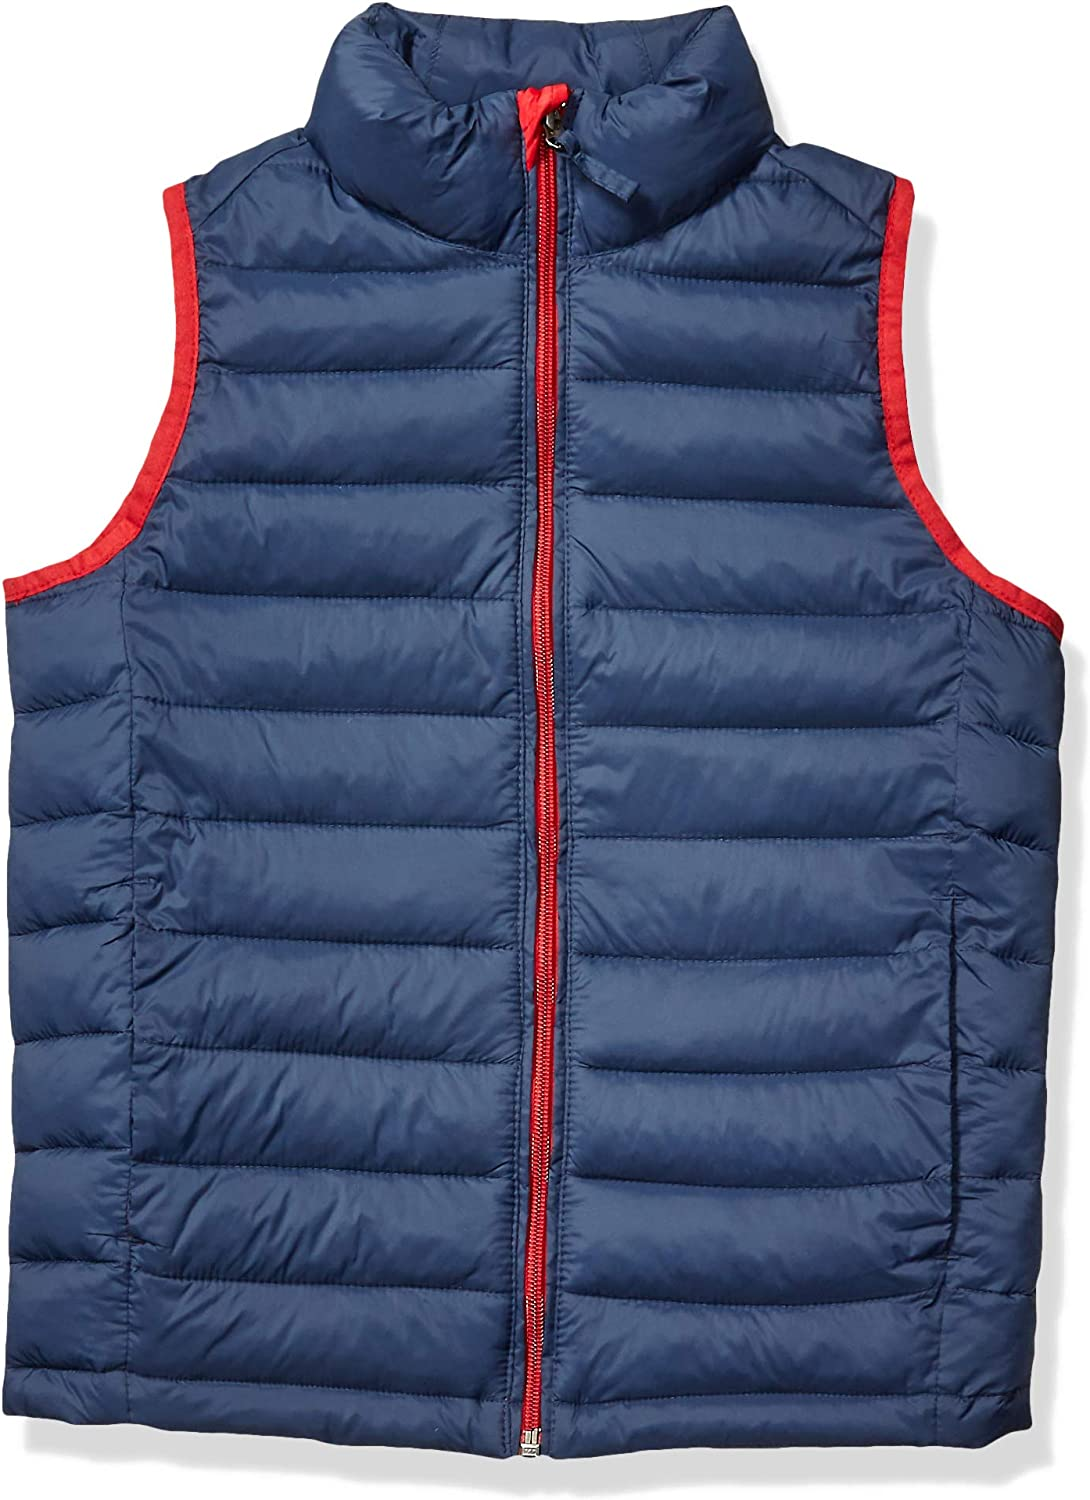 Amazon Essentials Boy's Lightweight Water-Resistant Packable Puffer Vest